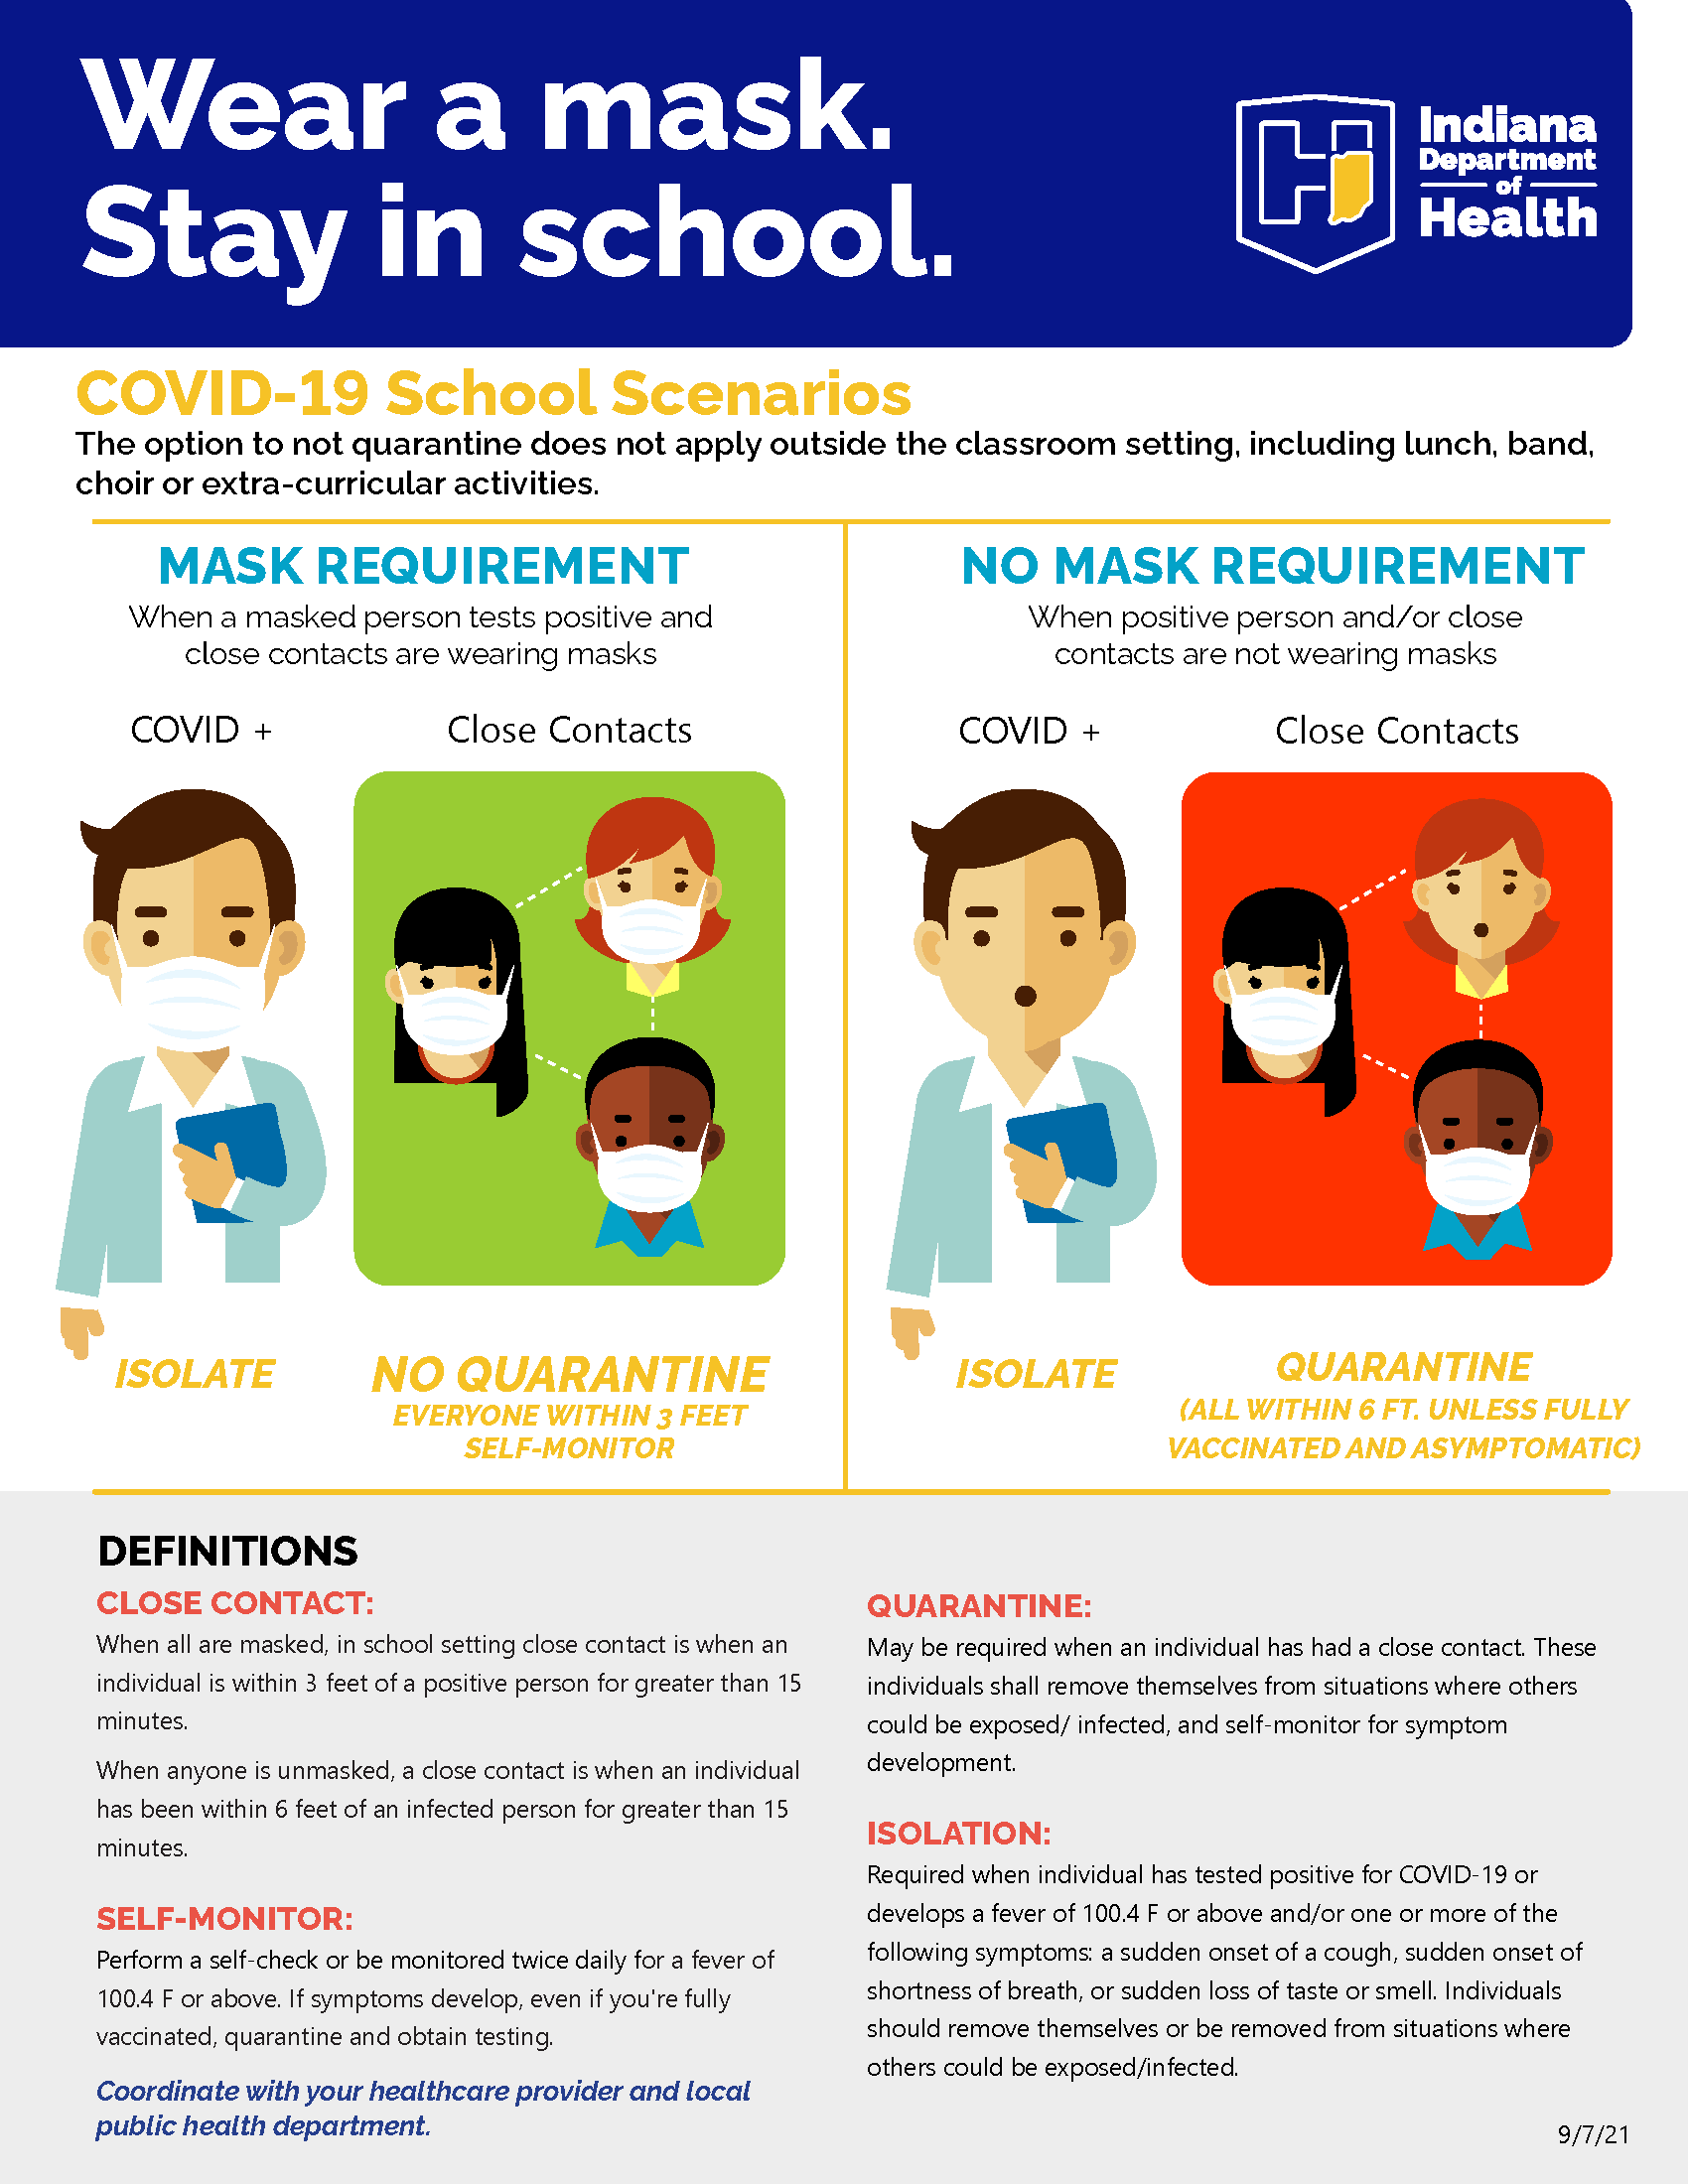 Indiana State Department of Health Wear a Mask Stay in School Flyer